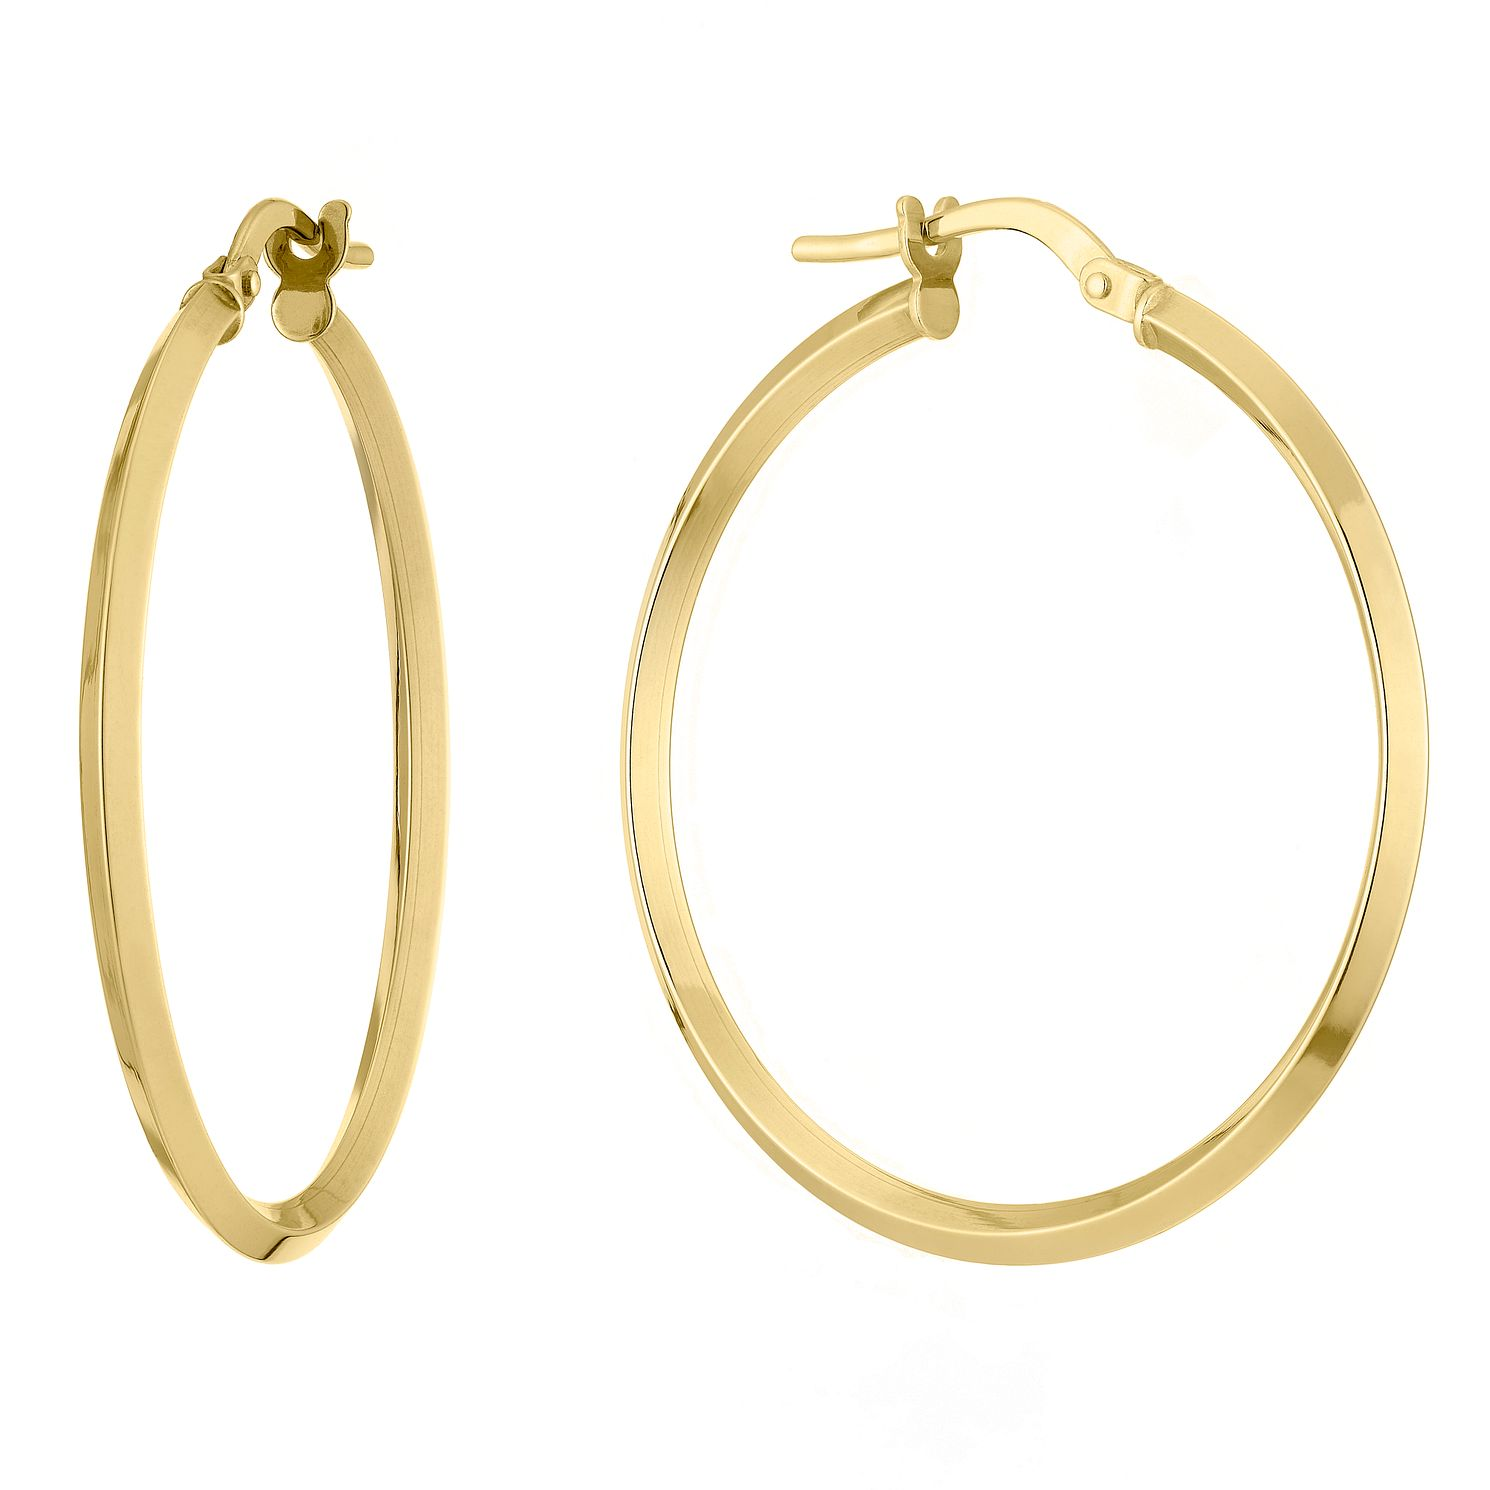 9ct Yellow Gold Bevelled Tube Creole Earrings - Product number 9665358